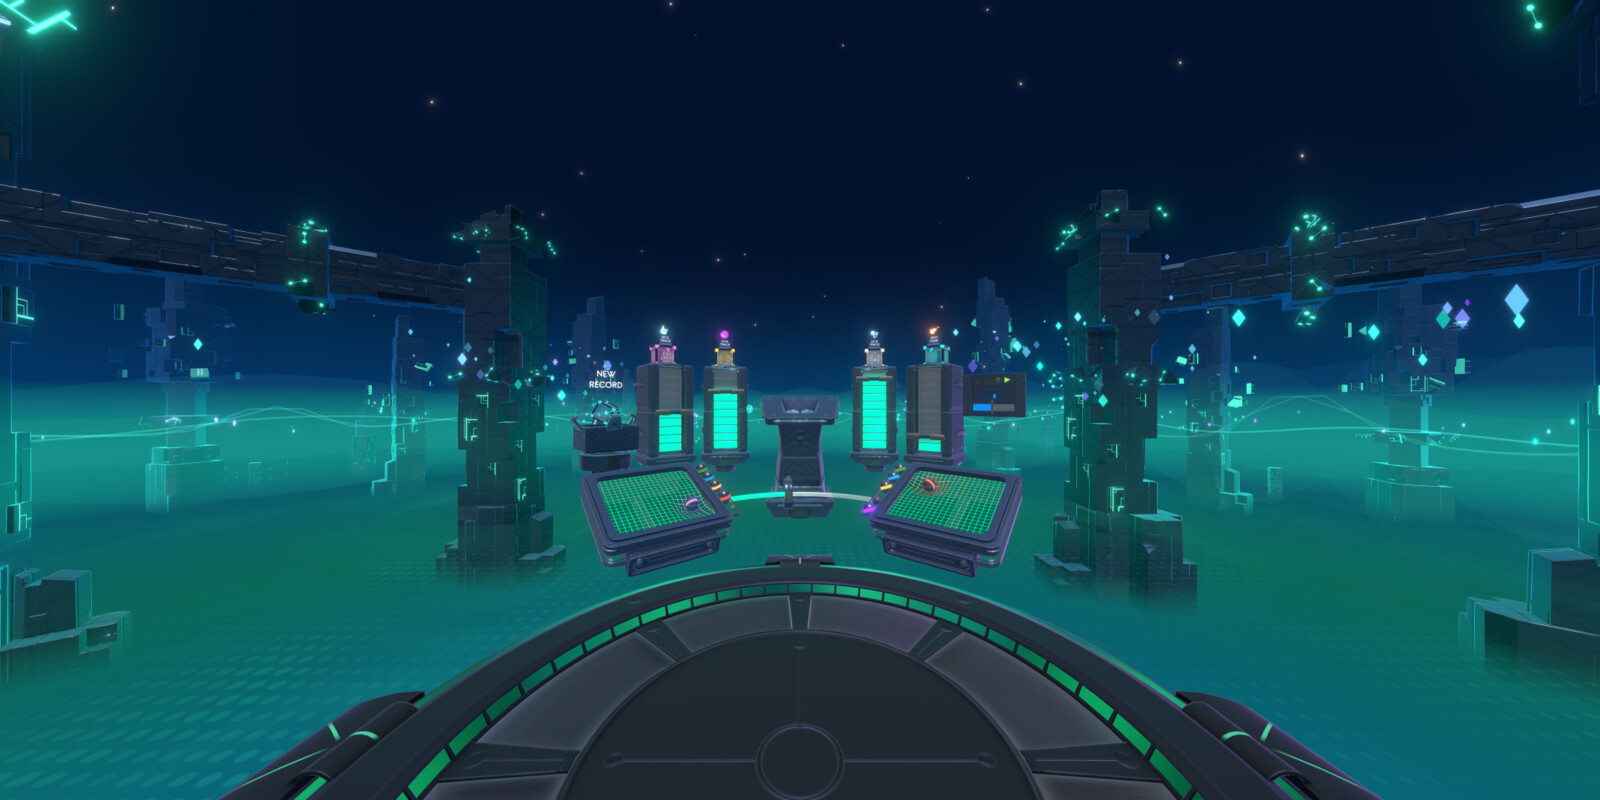 Environment overview with the DJ booth